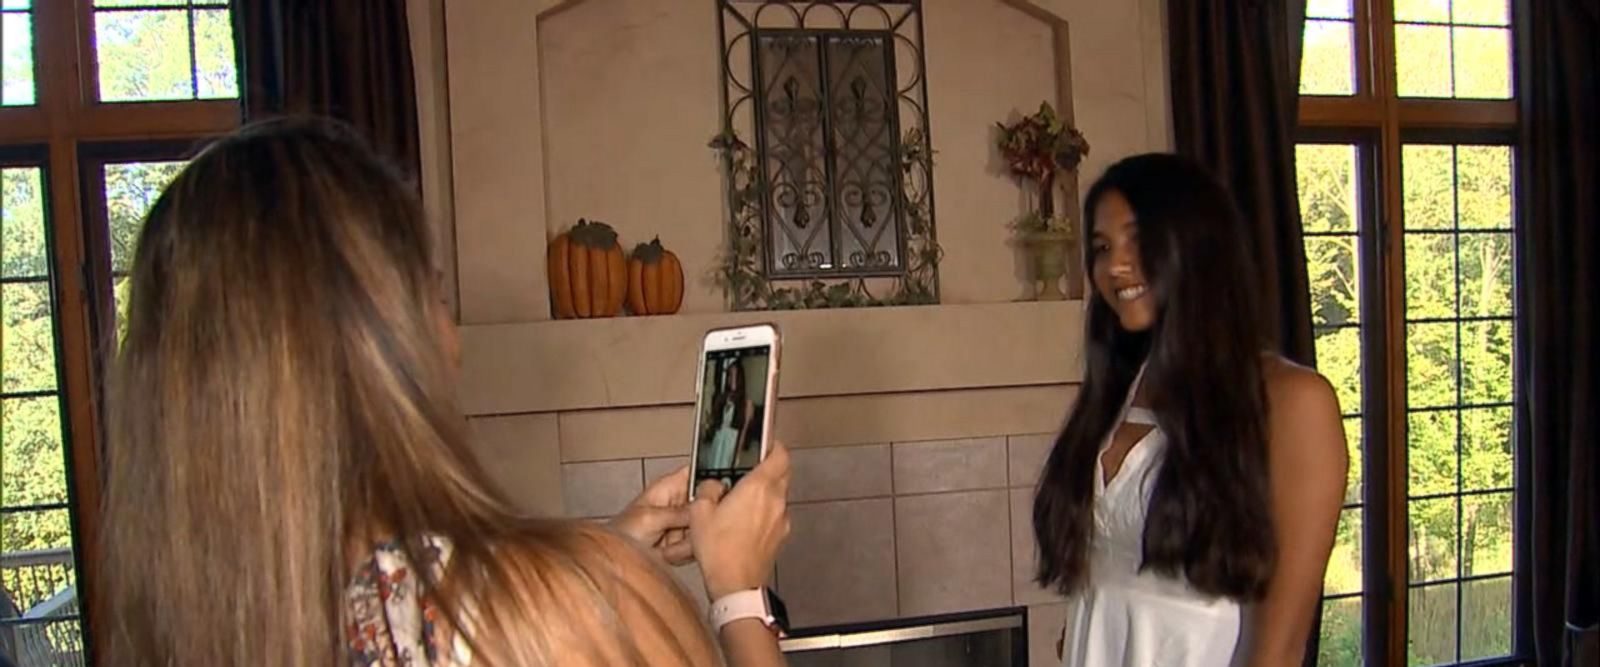 VIDEO: School district asks girls to submit dress photos before attending homecoming dance